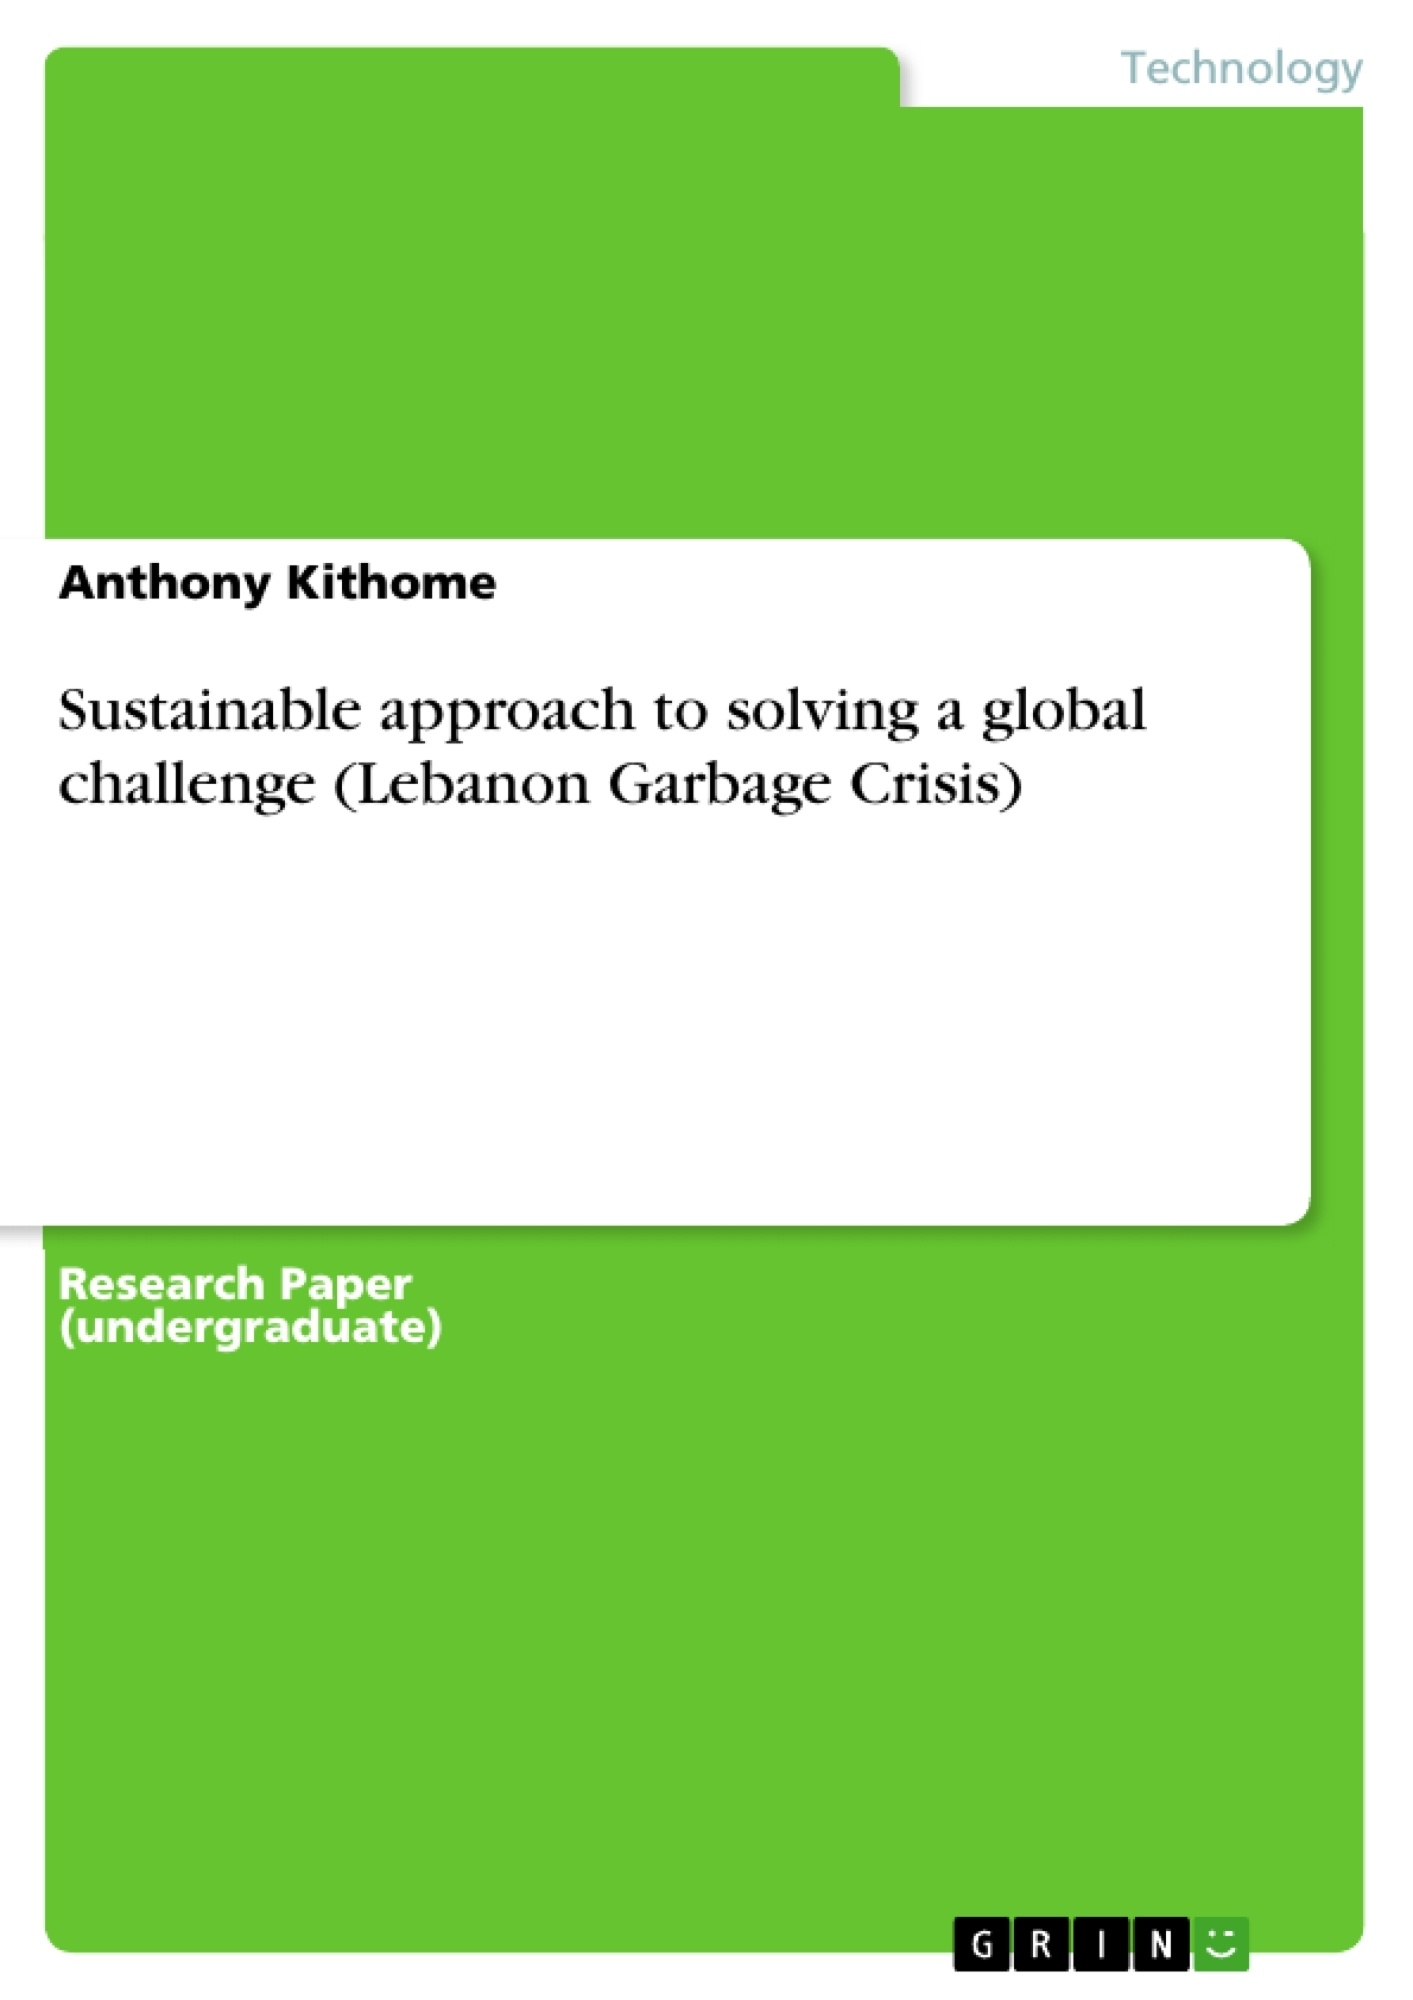 Title: Sustainable approach to solving a global challenge (Lebanon Garbage Crisis)